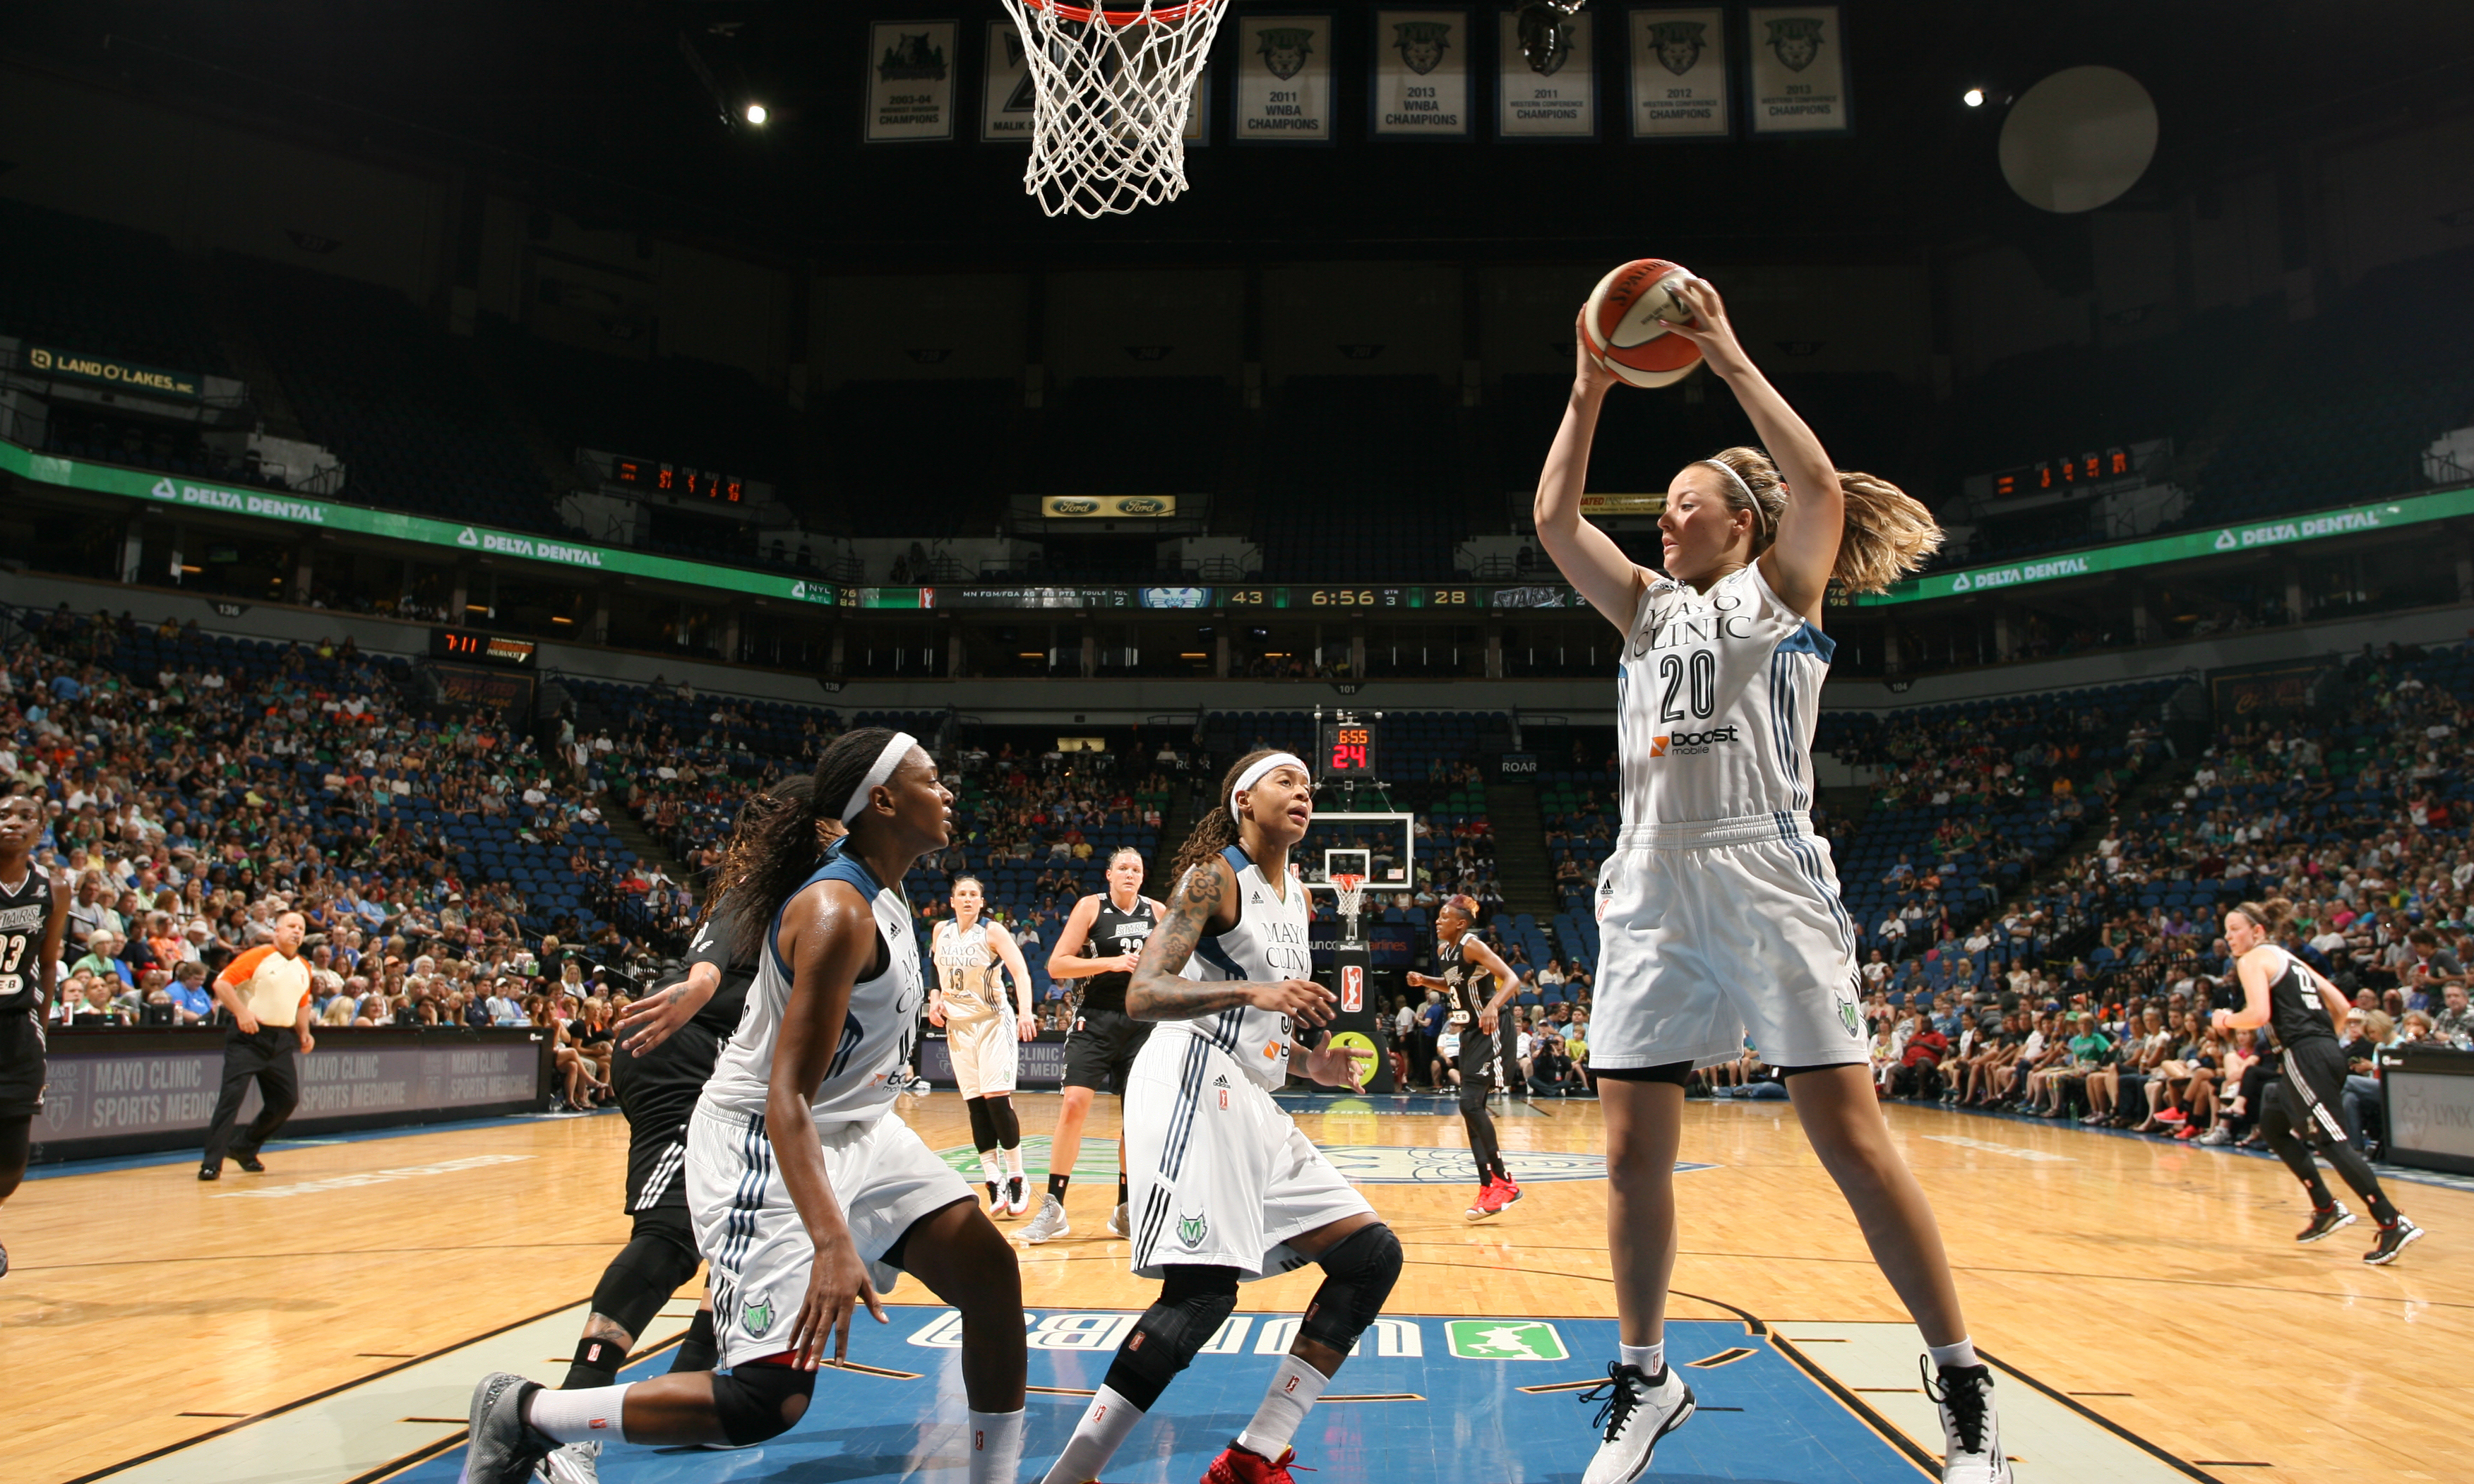 Lynx guard Tricia Liston had a solid game off the bench, providing many quality minutes for the team. Liston finished with six points, four rebounds and three assists.